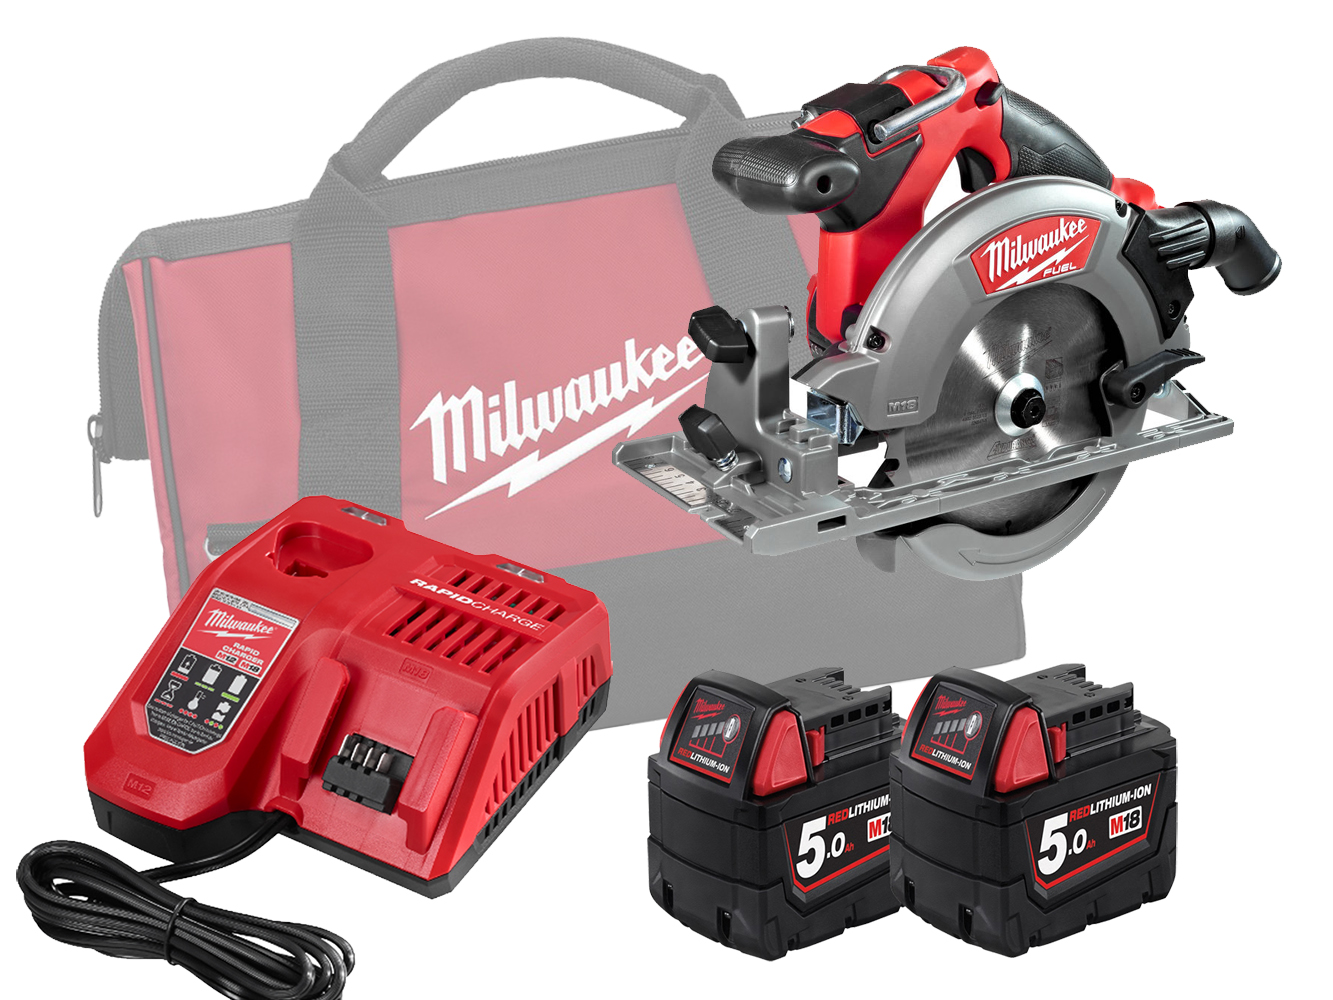 Milwaukee M18CCS55 18V FUEL 165mm (55mm) Circular Saw for Wood and Plastics - 5.0ah Pack